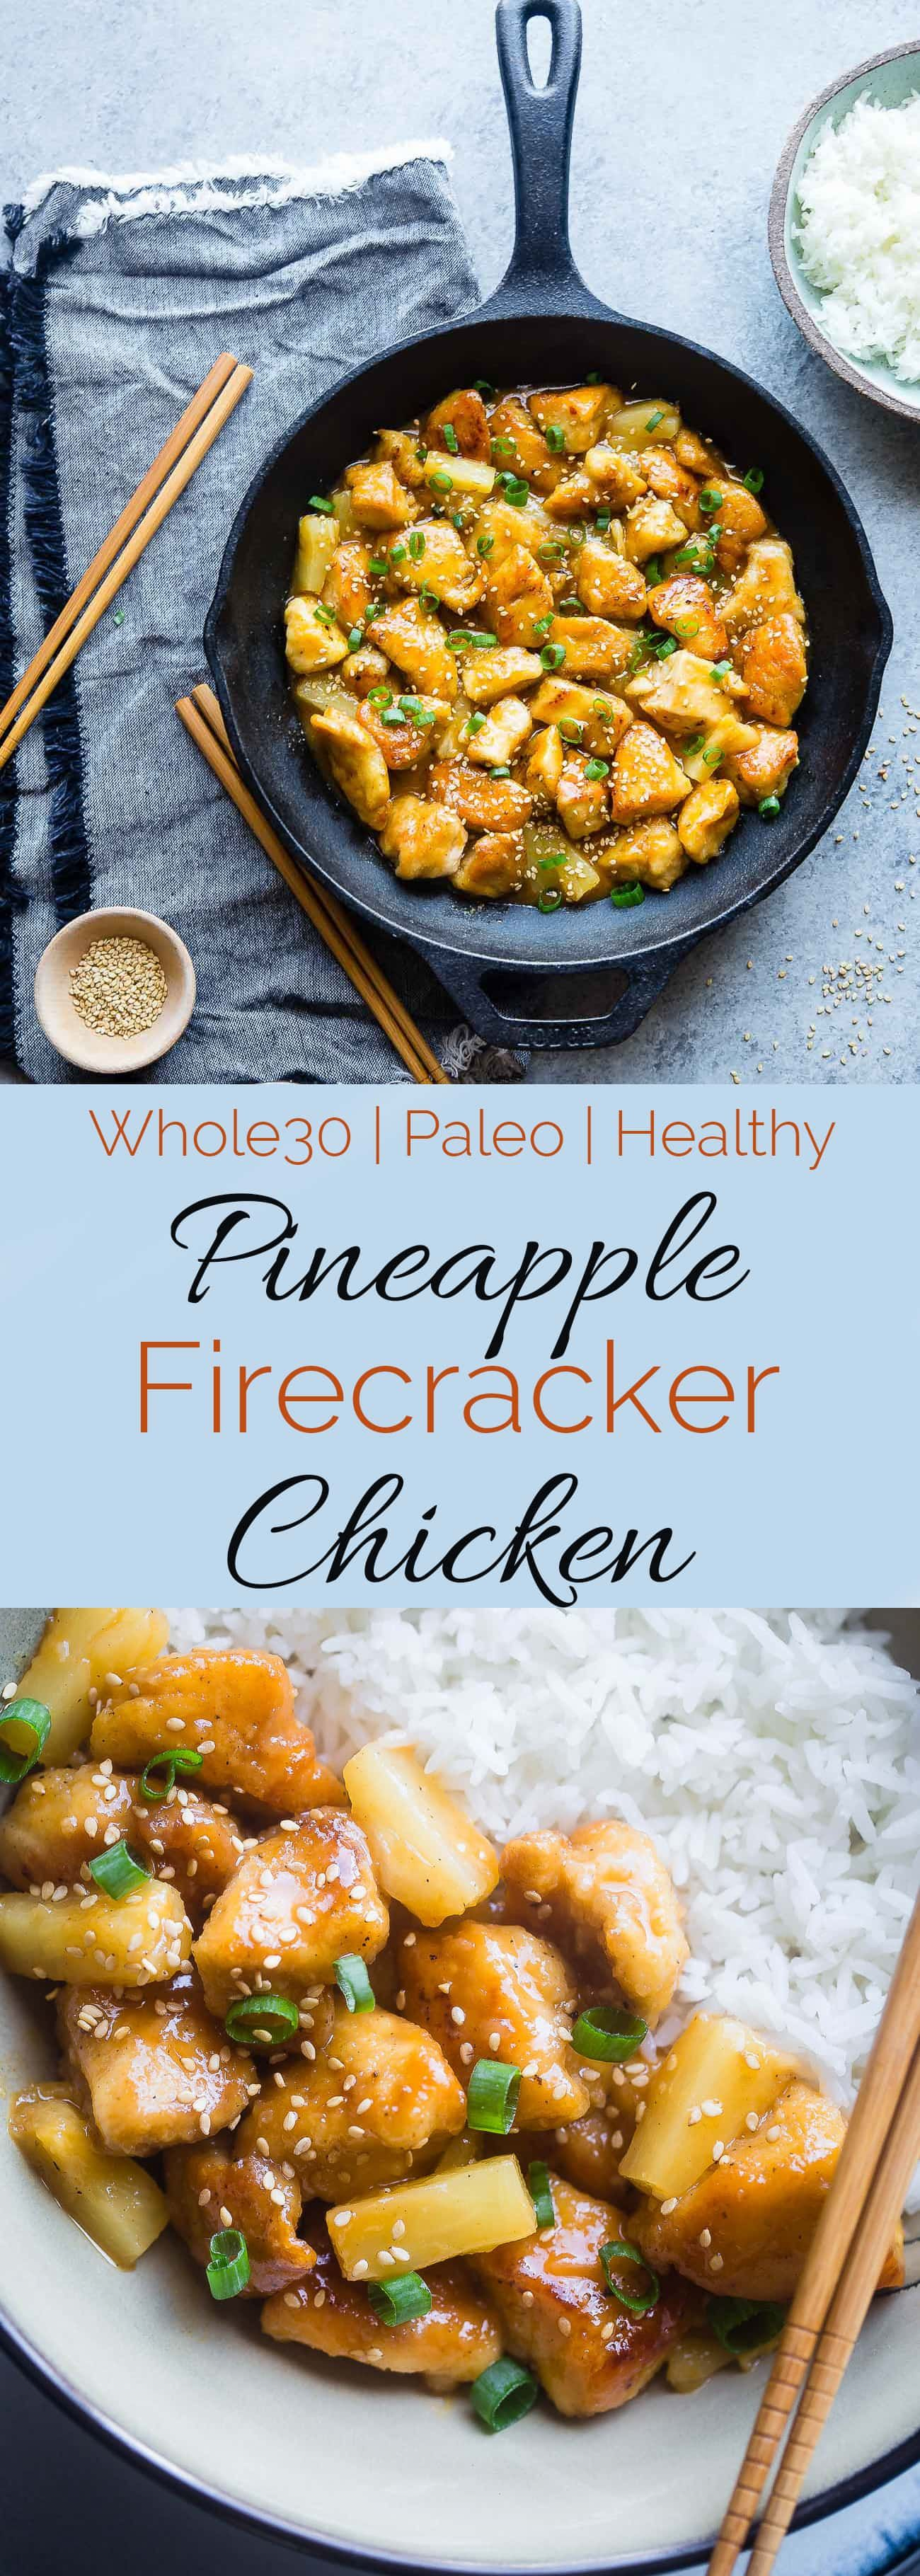 Whole30 Firecracker Pineapple Chicken - This healthy, sweet and spicy chicken is way better than takeout! A gluten free, paleo and whole30 cimpliant dinner that is always a crowd pleaser! | Foodfaithfitness.com | @FoodFaithFit via @FoodFaithFit